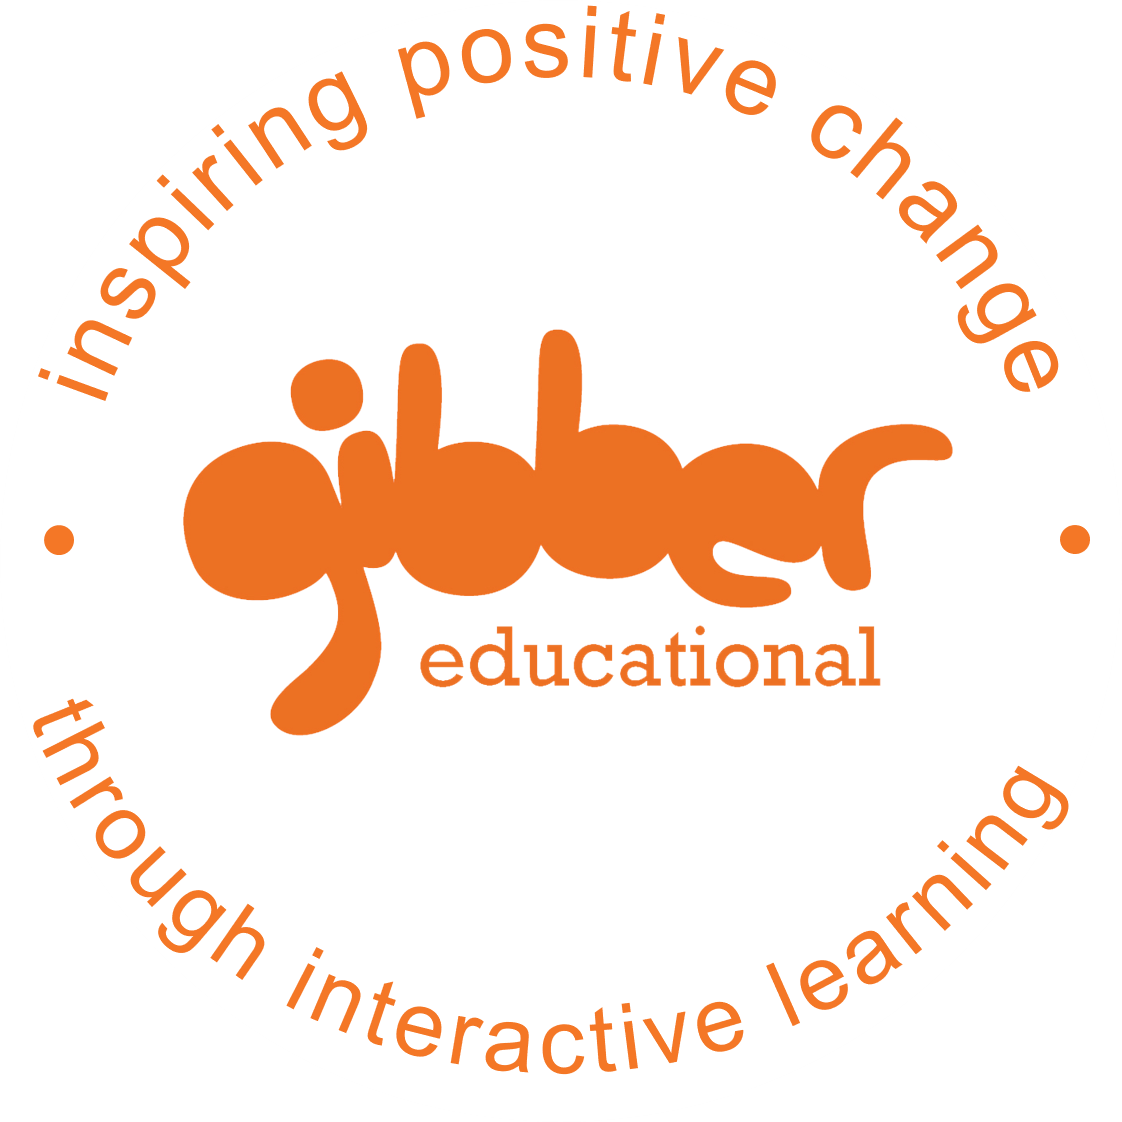 Gibber - inspiring positive change through interactive learning